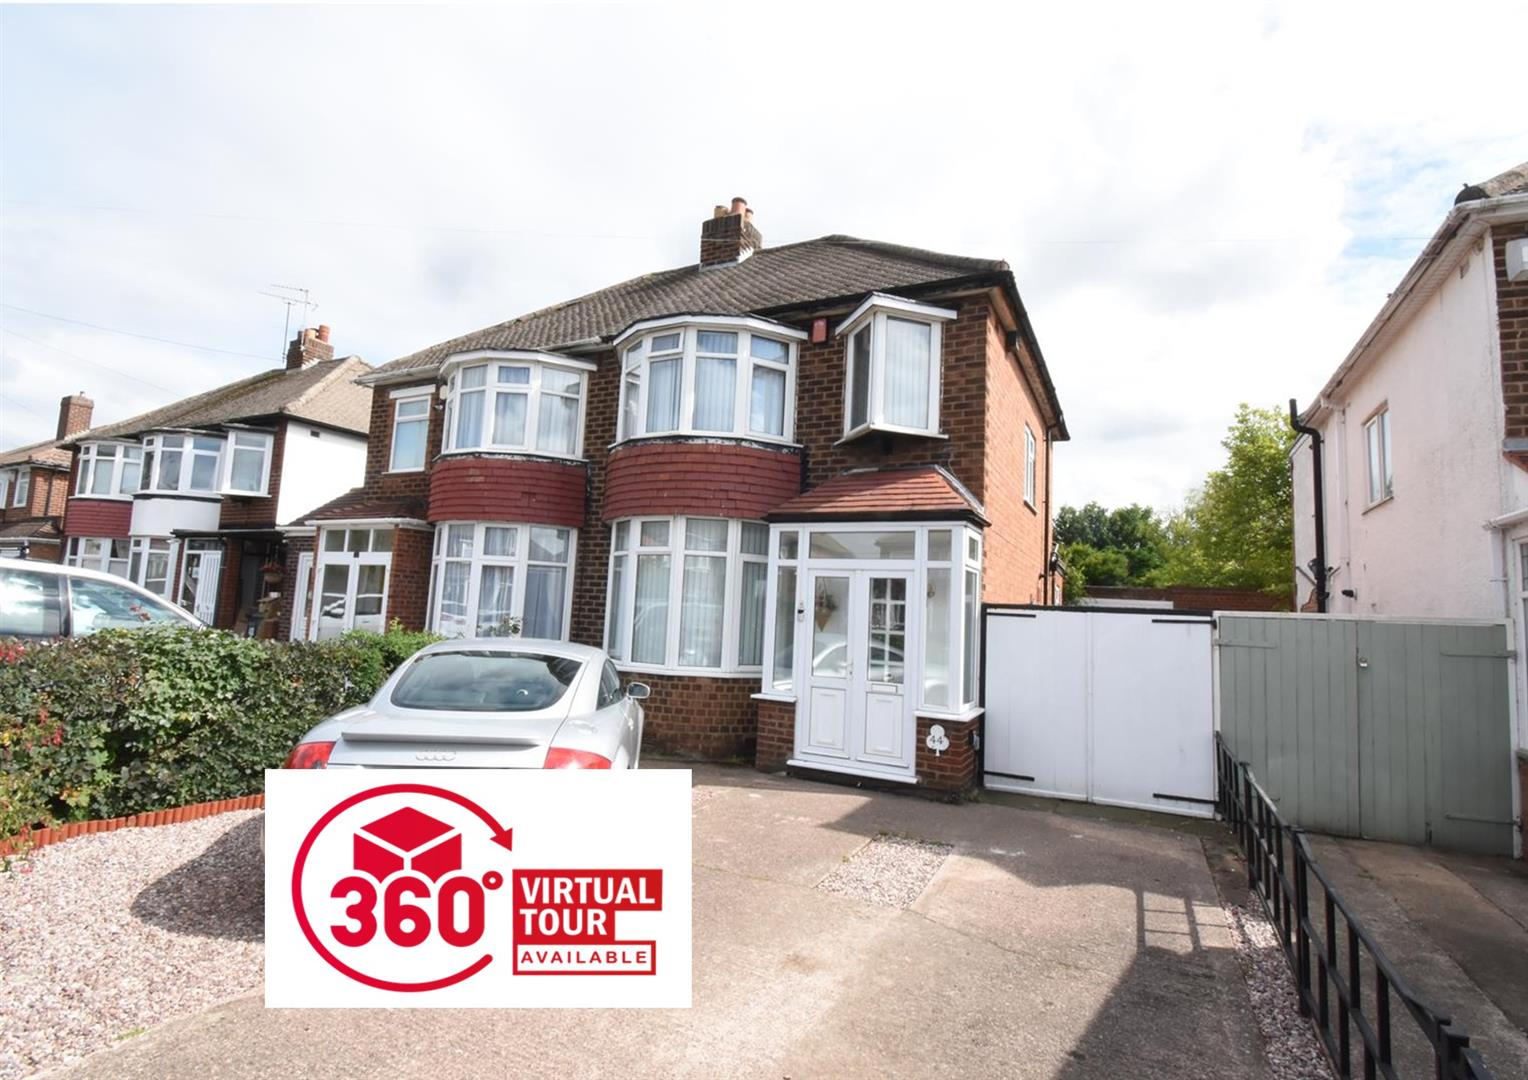 3 bed house for sale in Cranmore Road, Castle Bromwich, Birmingham, B36